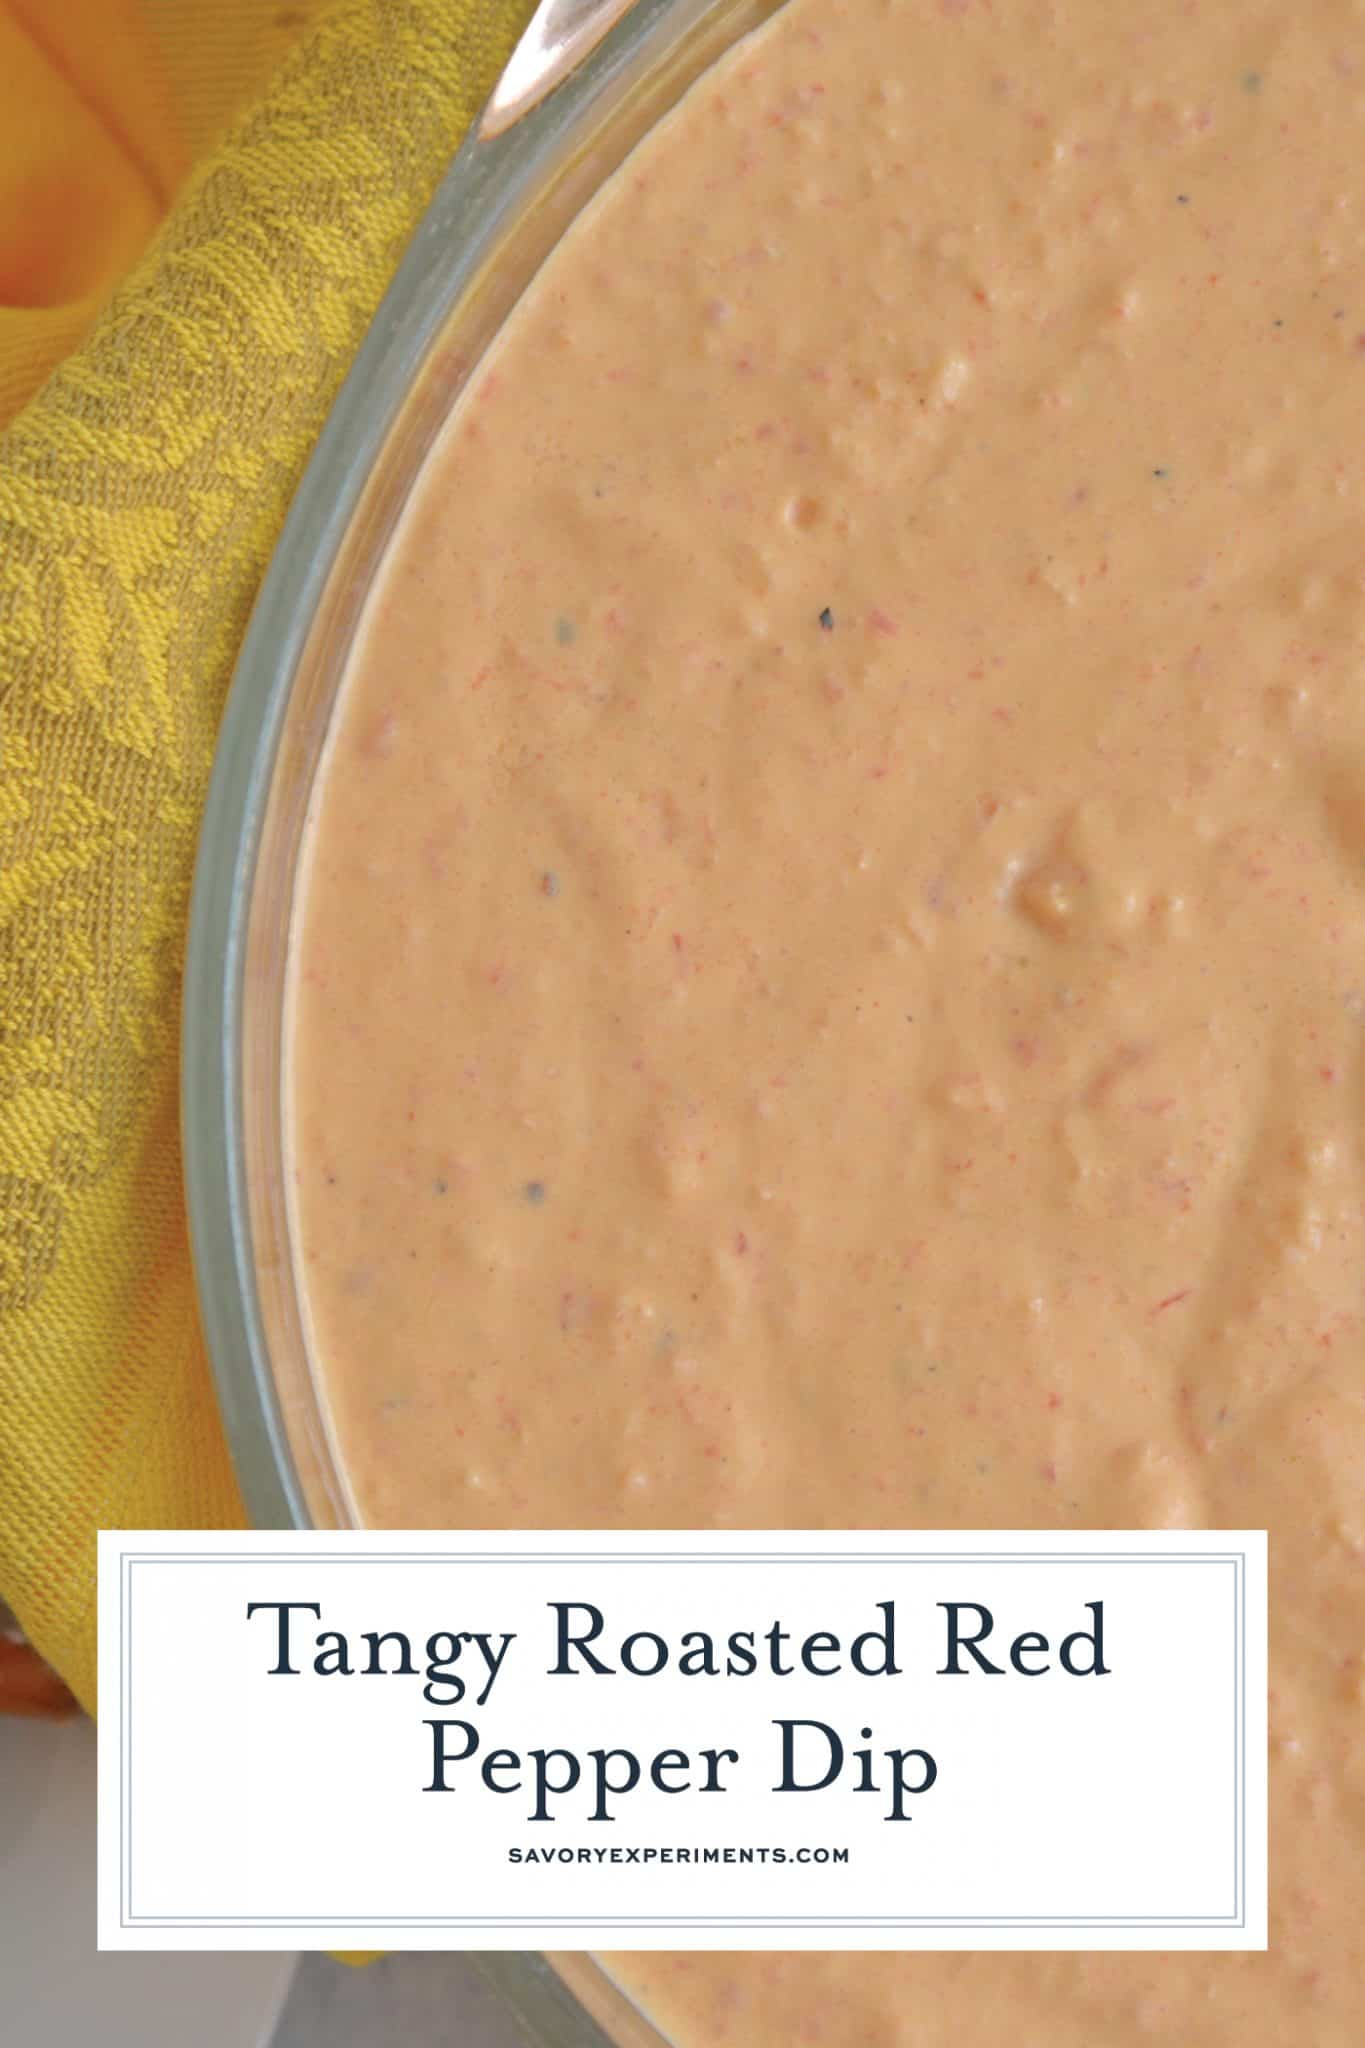 Roasted Red Pepper Dip is tangy, light, and irresistibly delicious. Served warm or cold, it is perfect for parties or an afternoon snack. #roastedredpepperdip #chipdip #roastedredpepper www.savoryexperiments.com